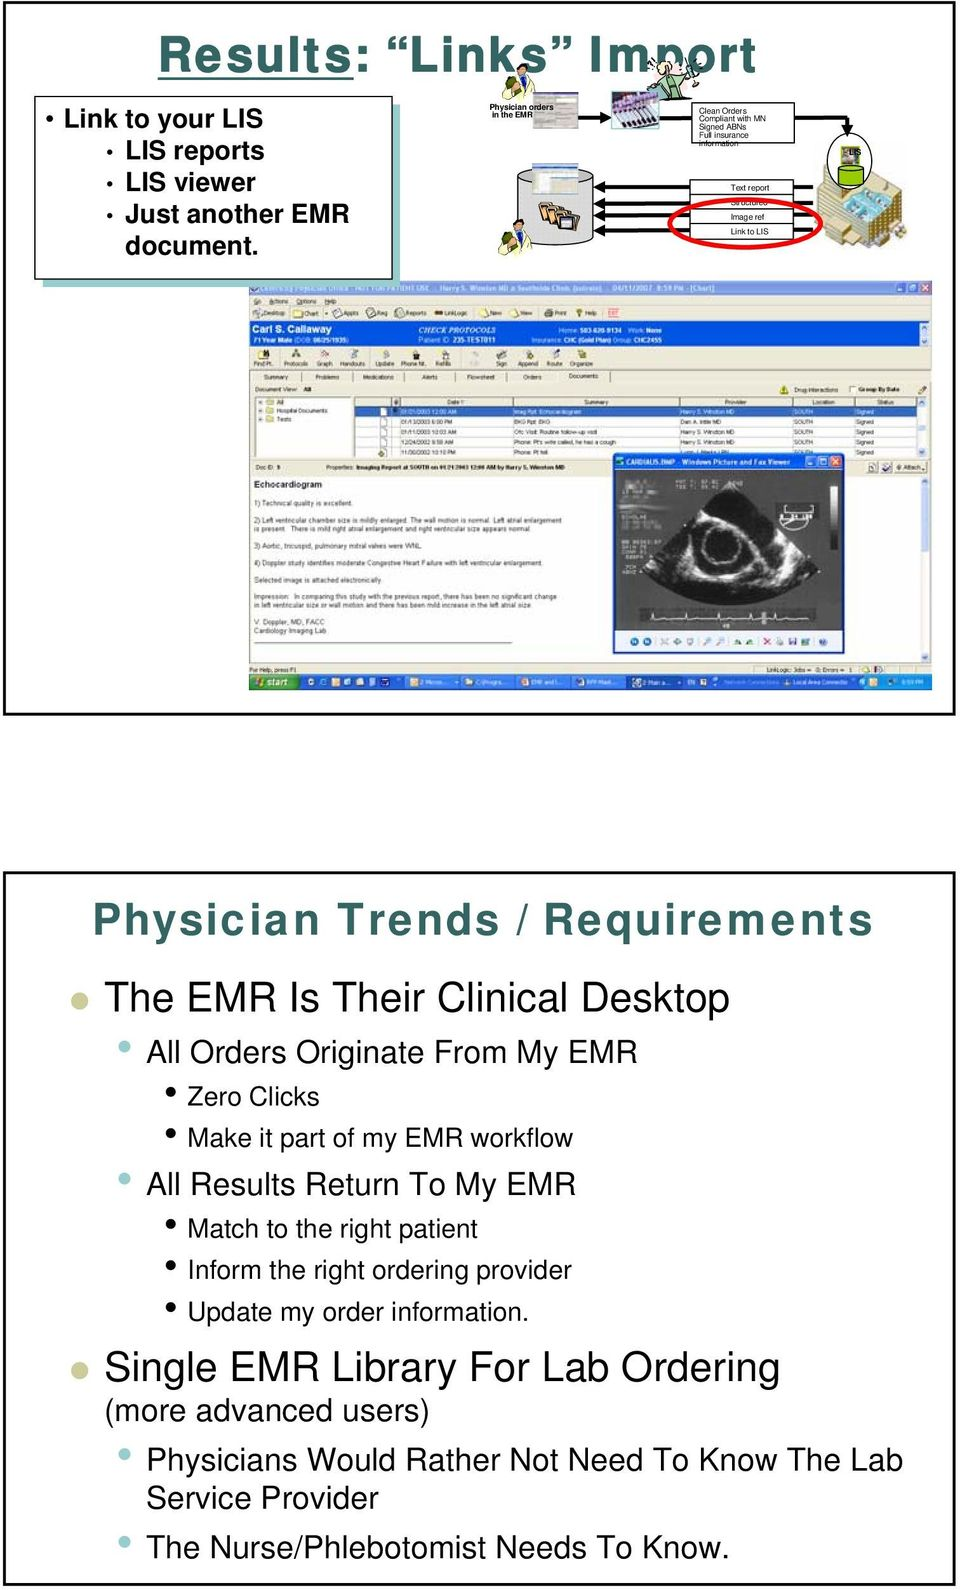 Requirements The EMR Is Their Clinical Desktop All Orders Originate From My EMR Zero Clicks Make it part of my EMR workflow All Results Return To My EMR Match to the right